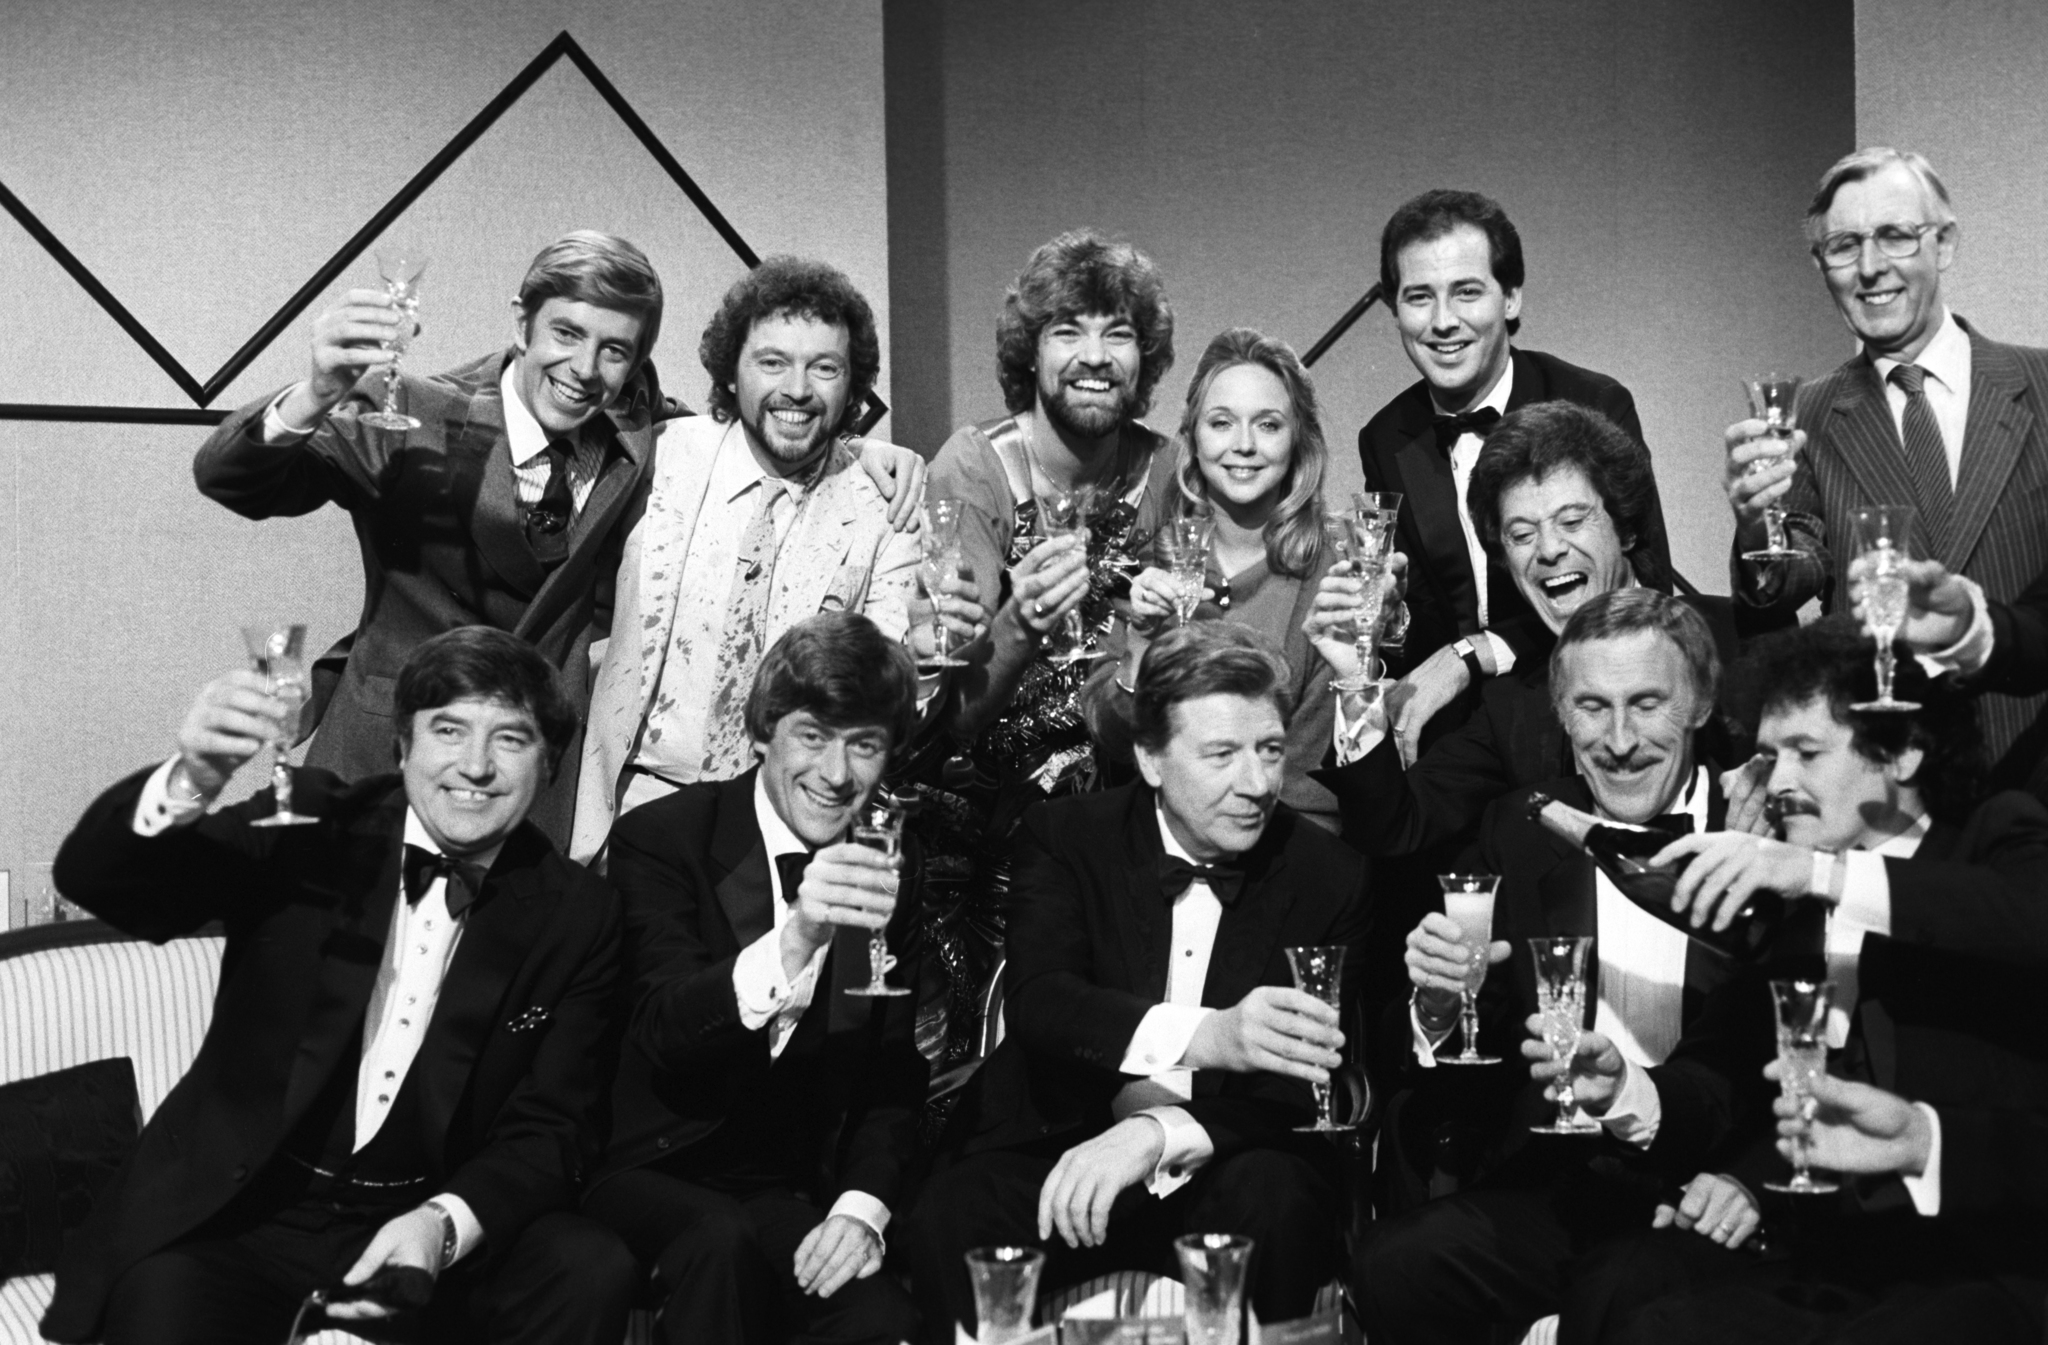 Bobby Ball, Michael Barrymore, Jeremy Beadle, Lionel Blair, Max Bygraves, Bruce Forsyth, Henry Kelly, Matthew Kelly, Sarah Kennedy, Jimmy Tarbuck, and Mike Yarwood